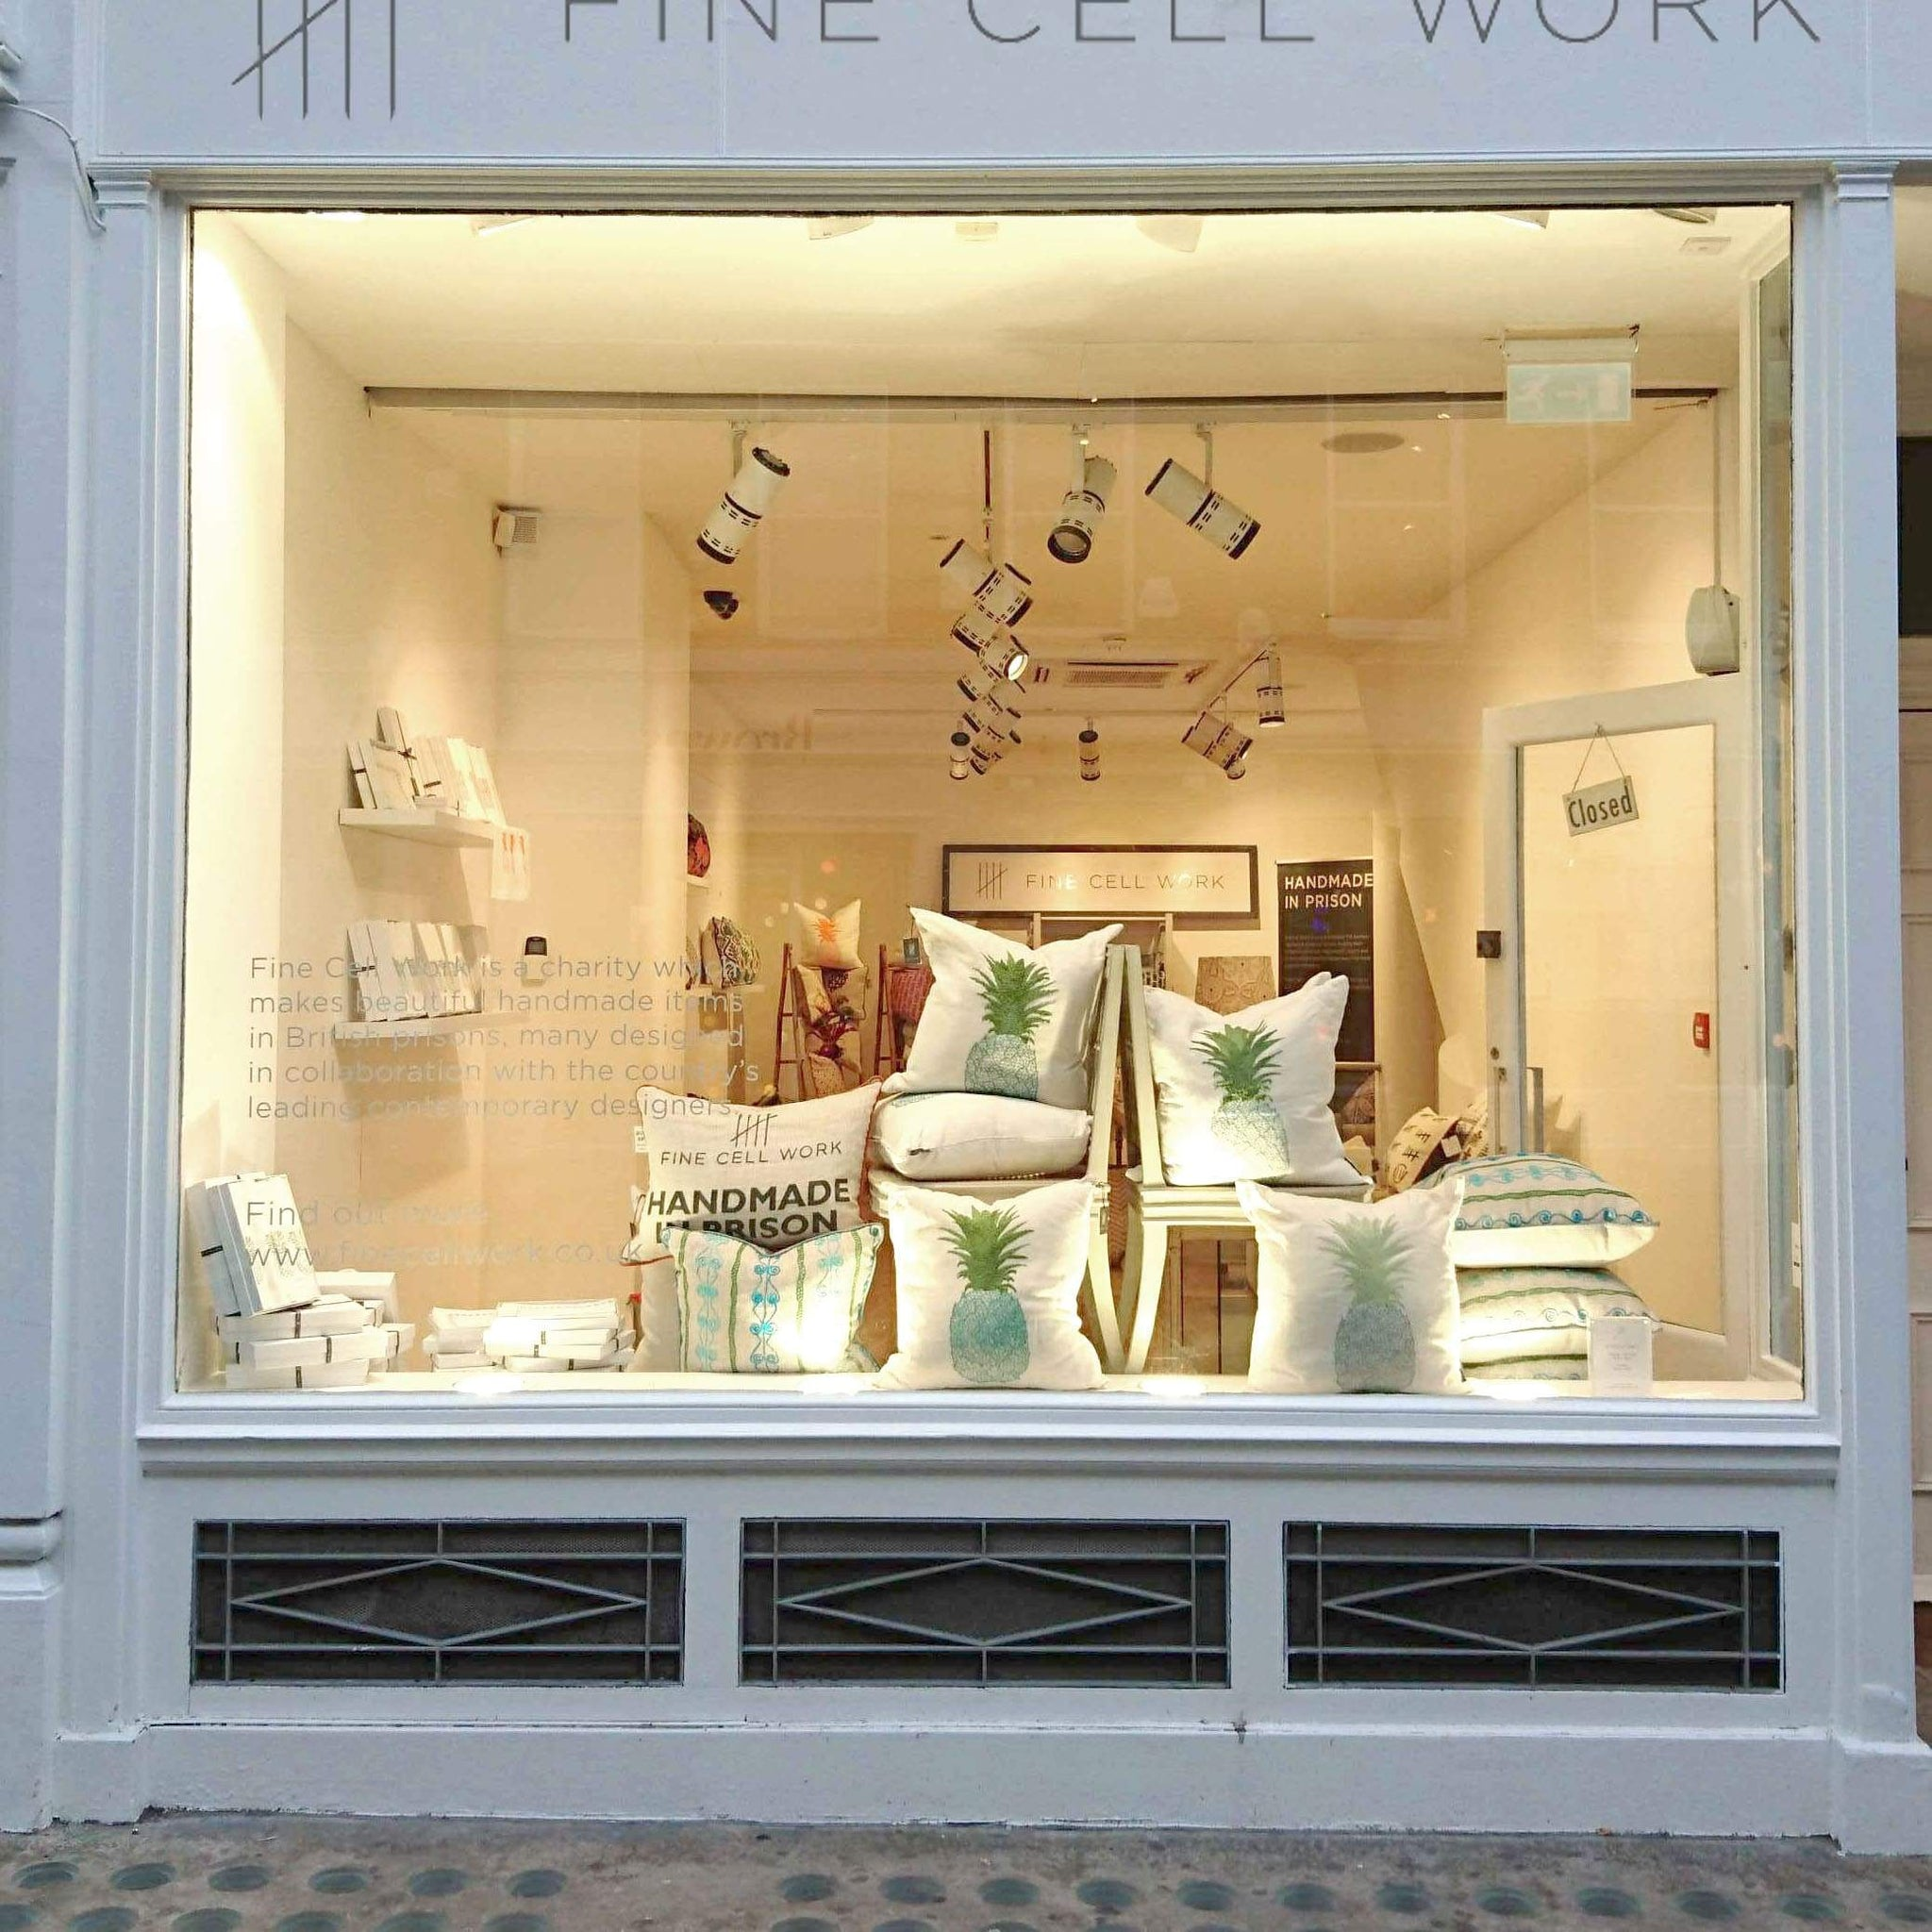 South Molton Street Pop-up Shop